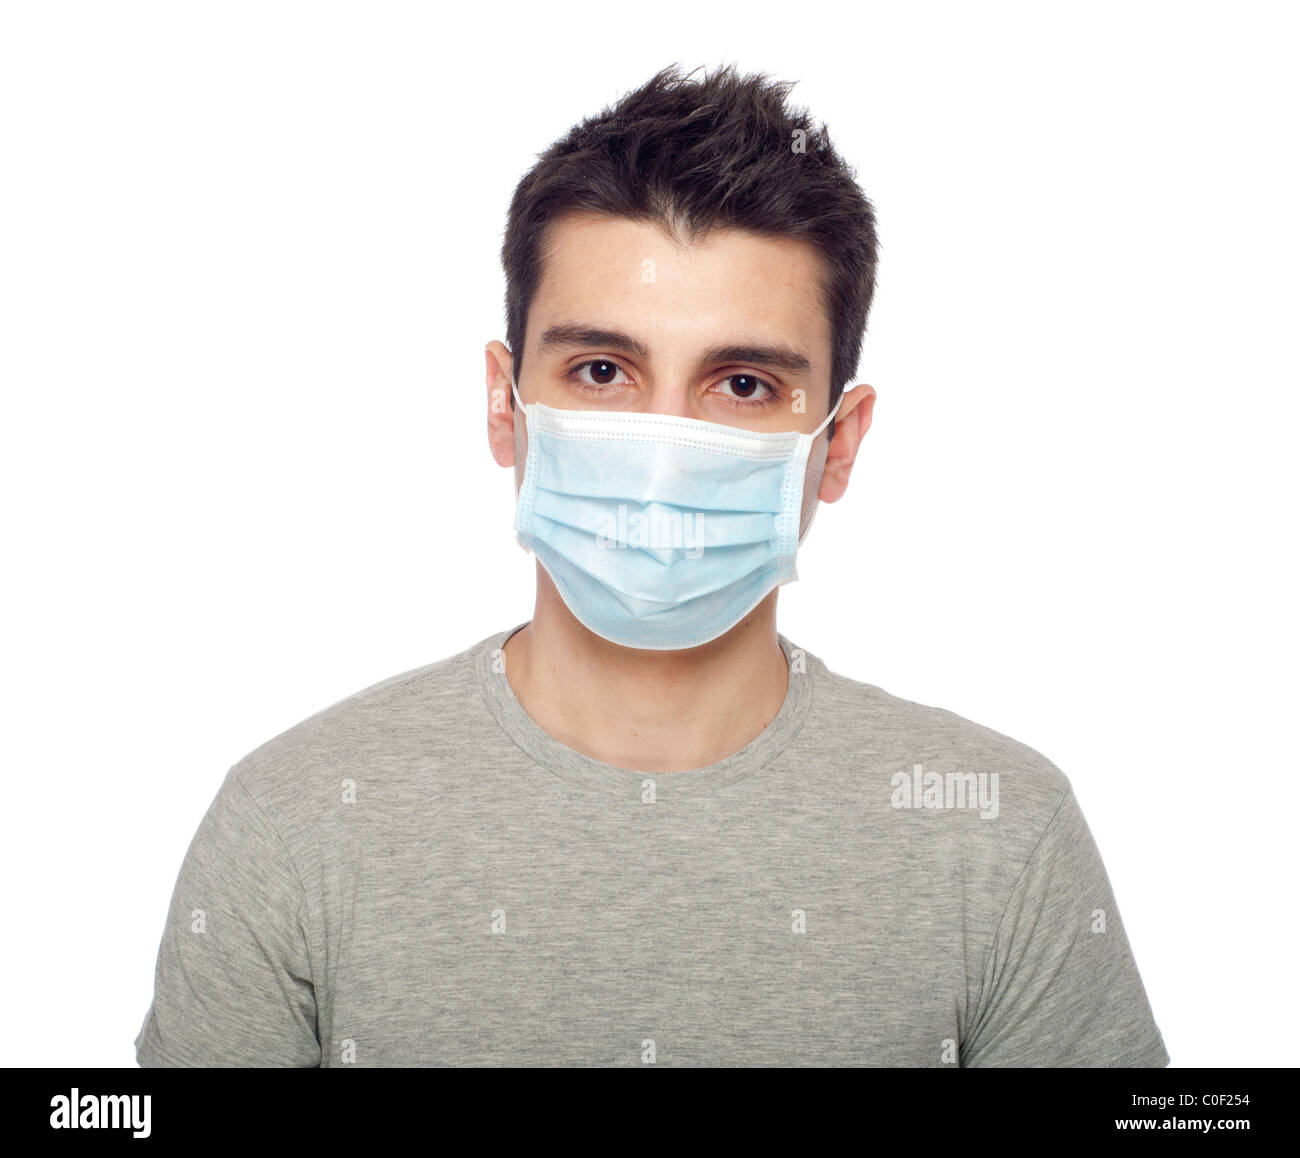 young man wearing a protective mask isolated on white background - Stock Image